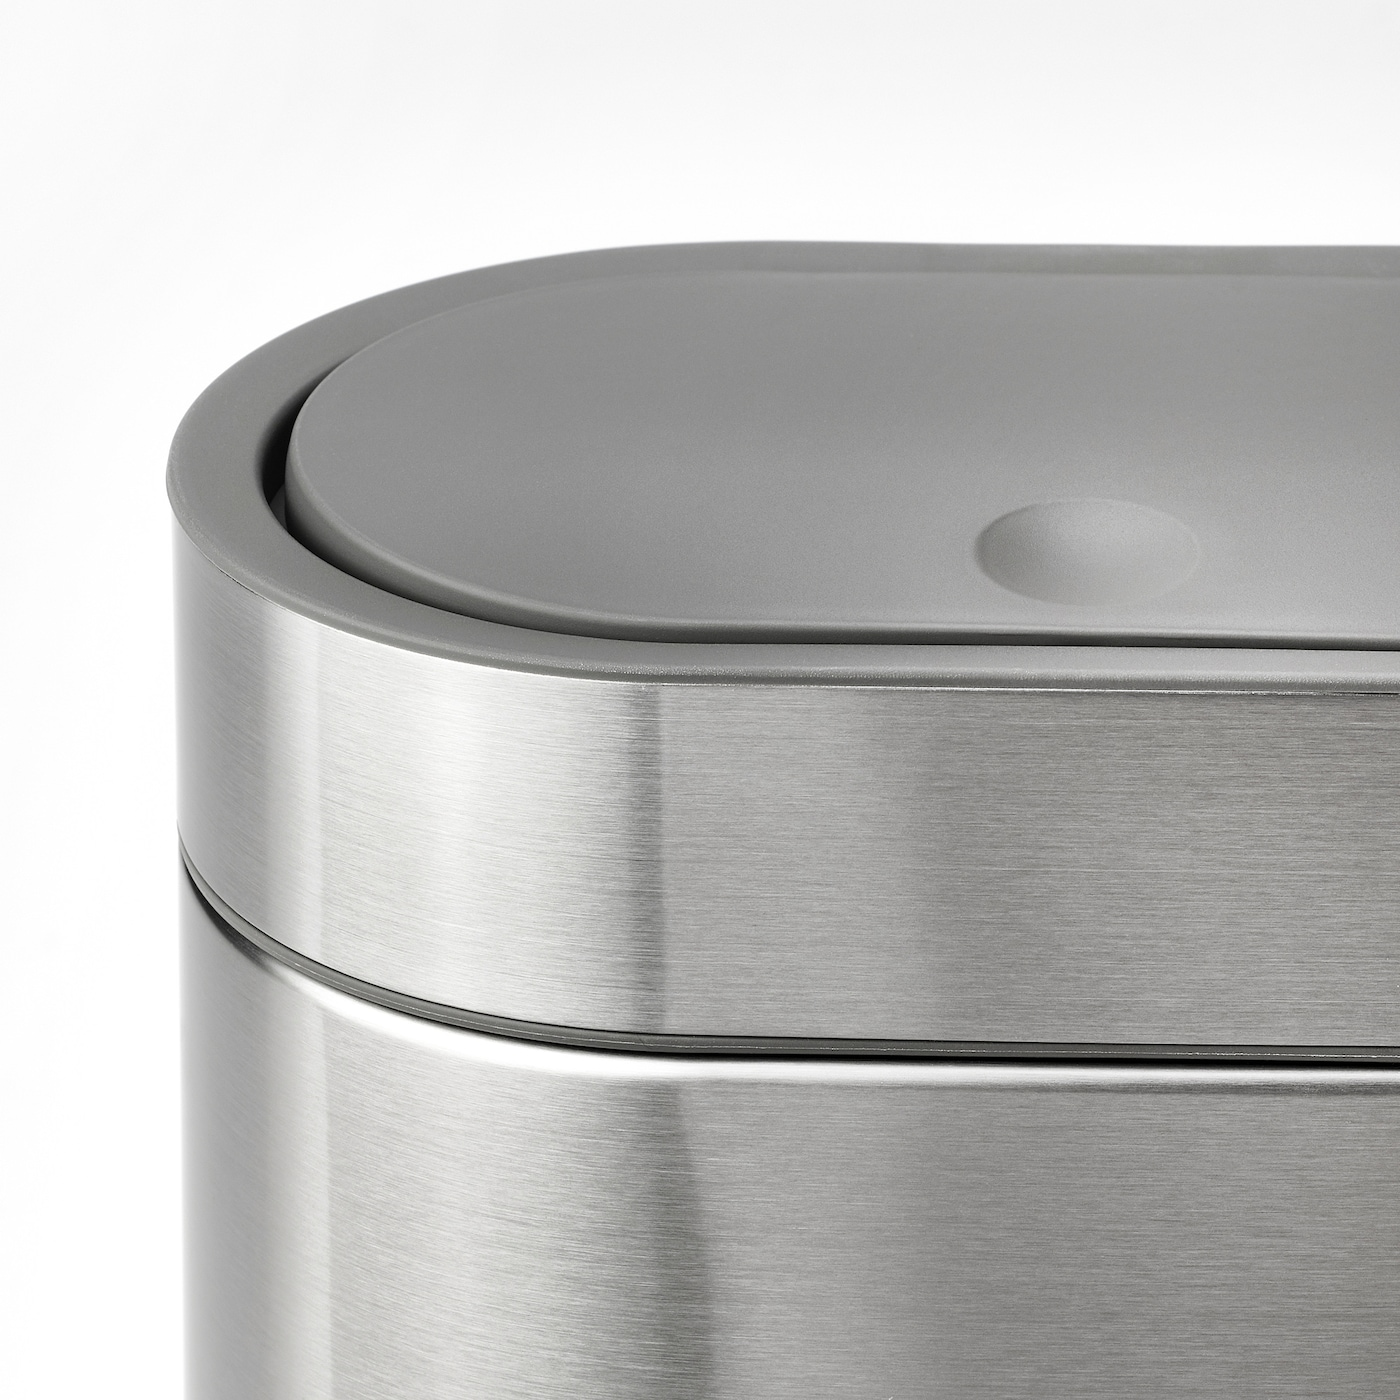 BROGRUND Touch top trash can, stainless steel, 1 gallon